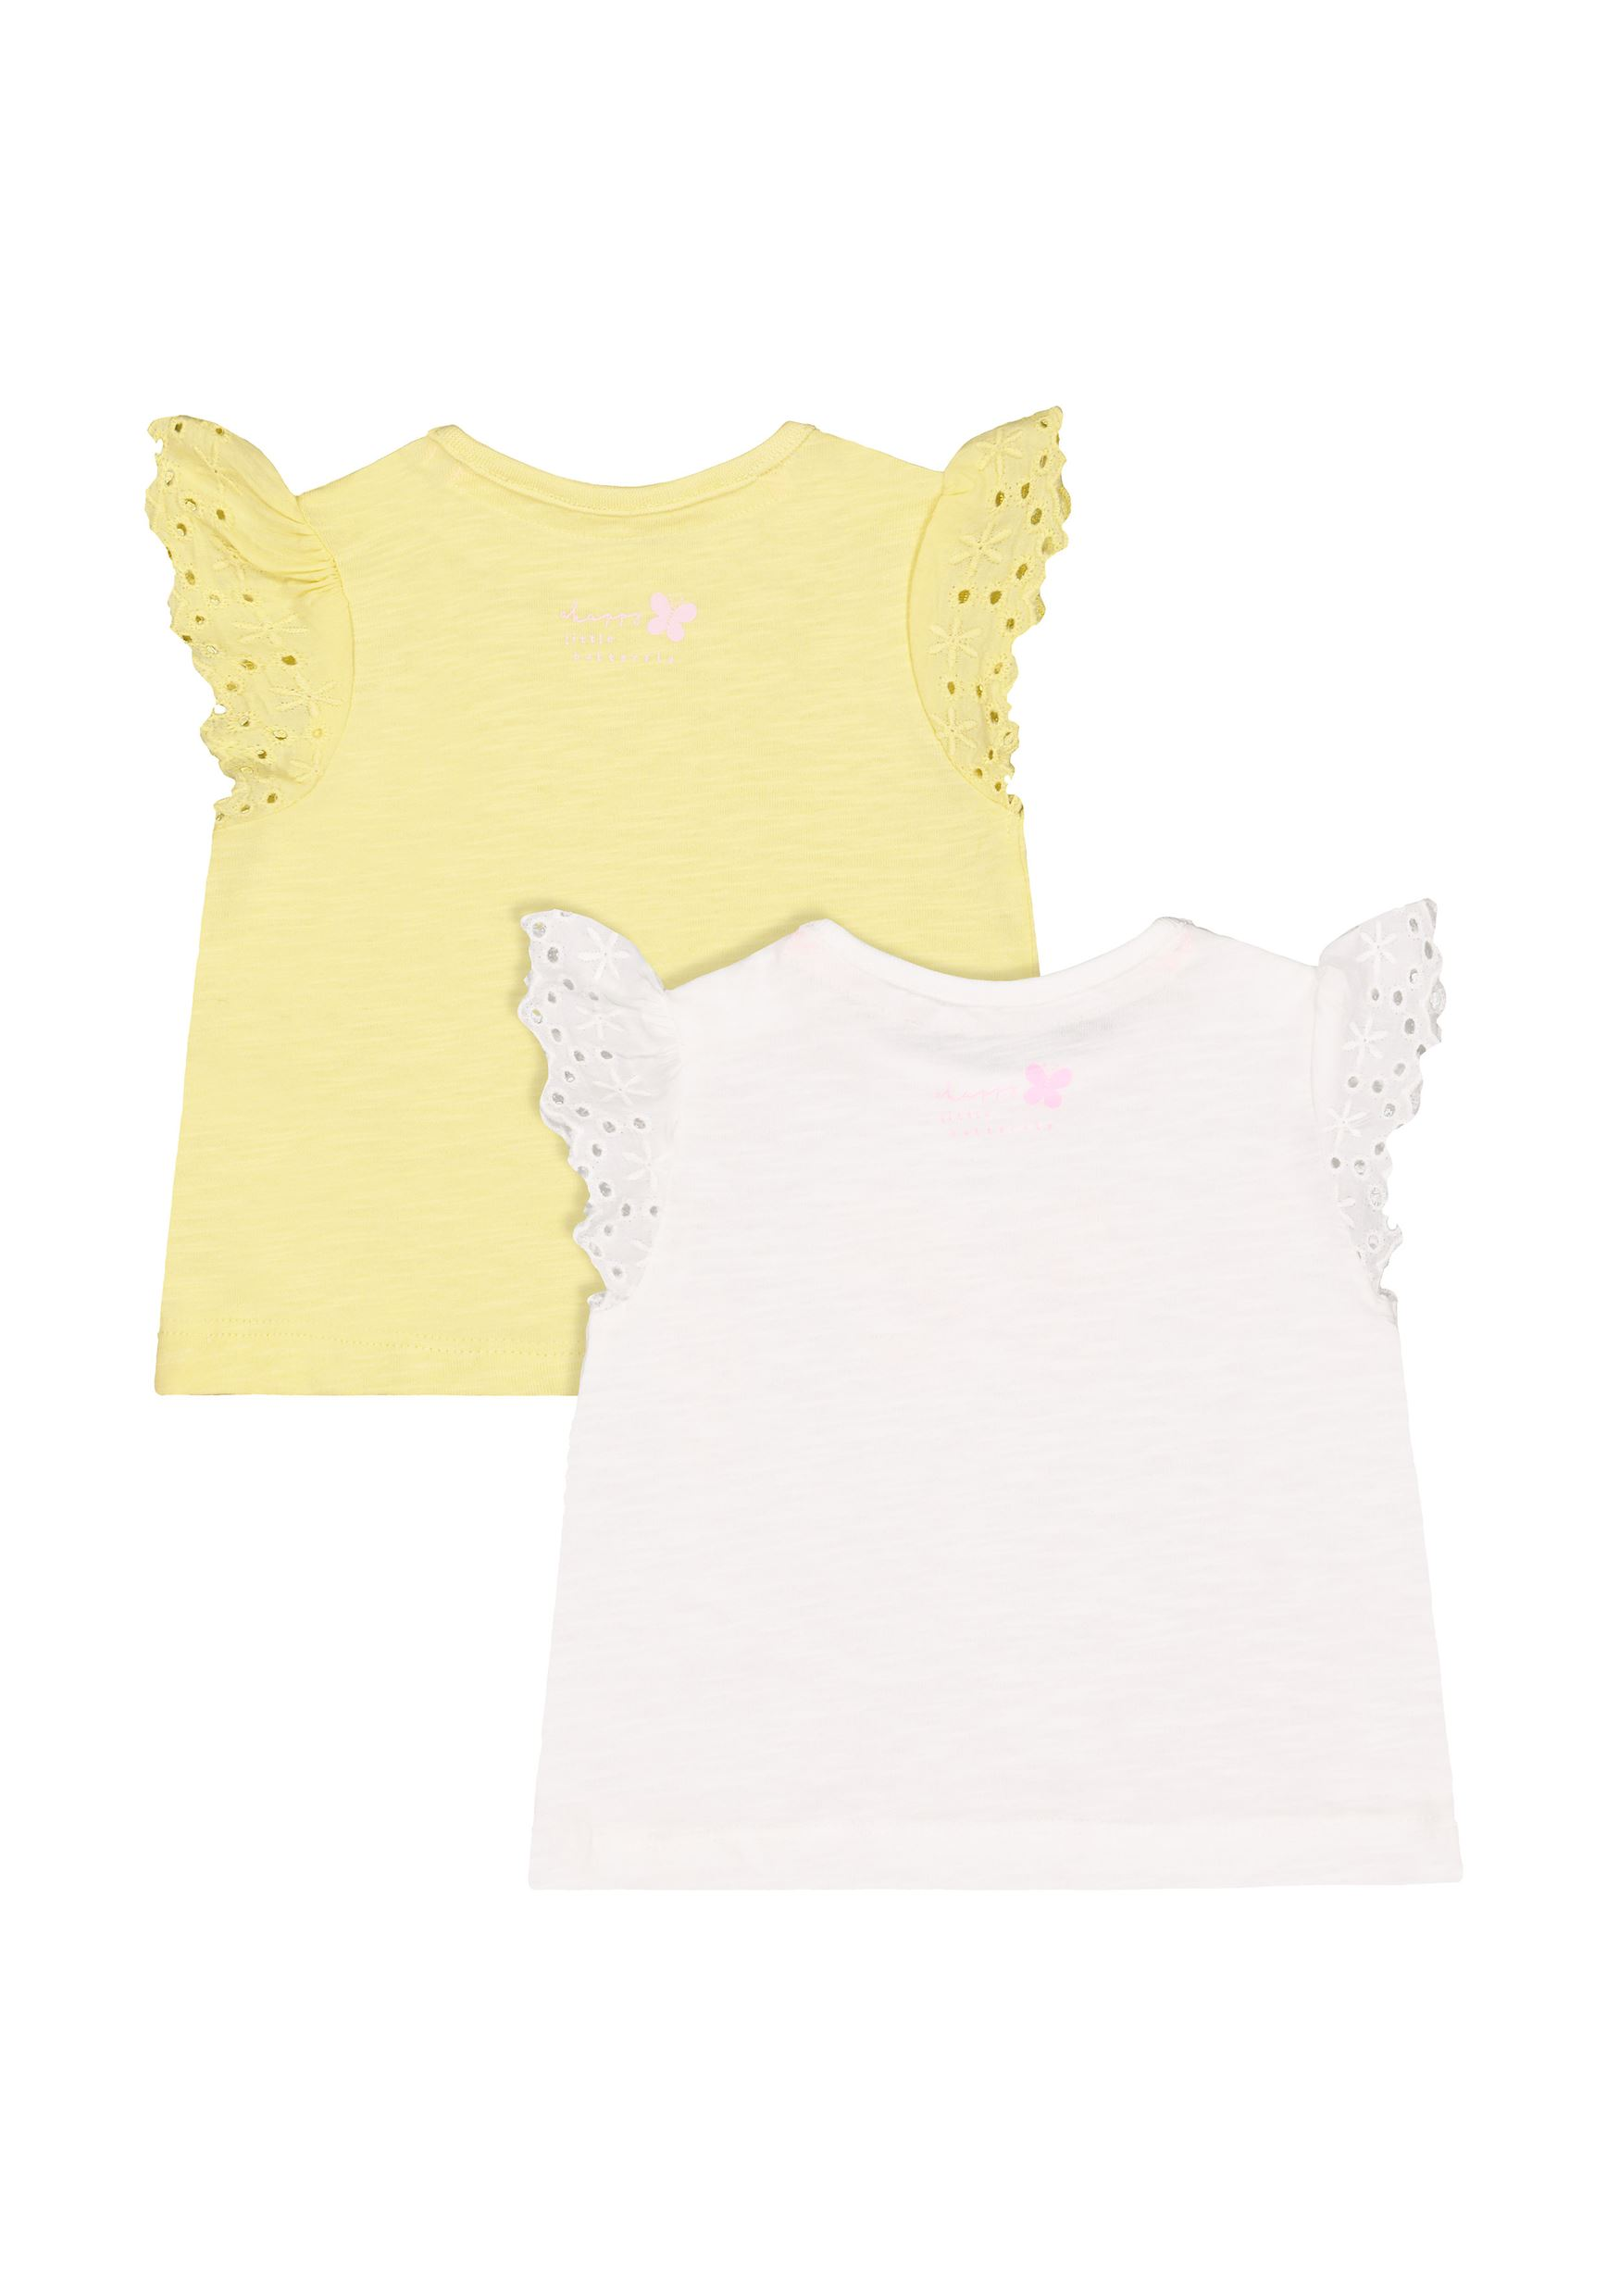 Mothercare Girls Assorted Printed Pack of 2 T-Shirts